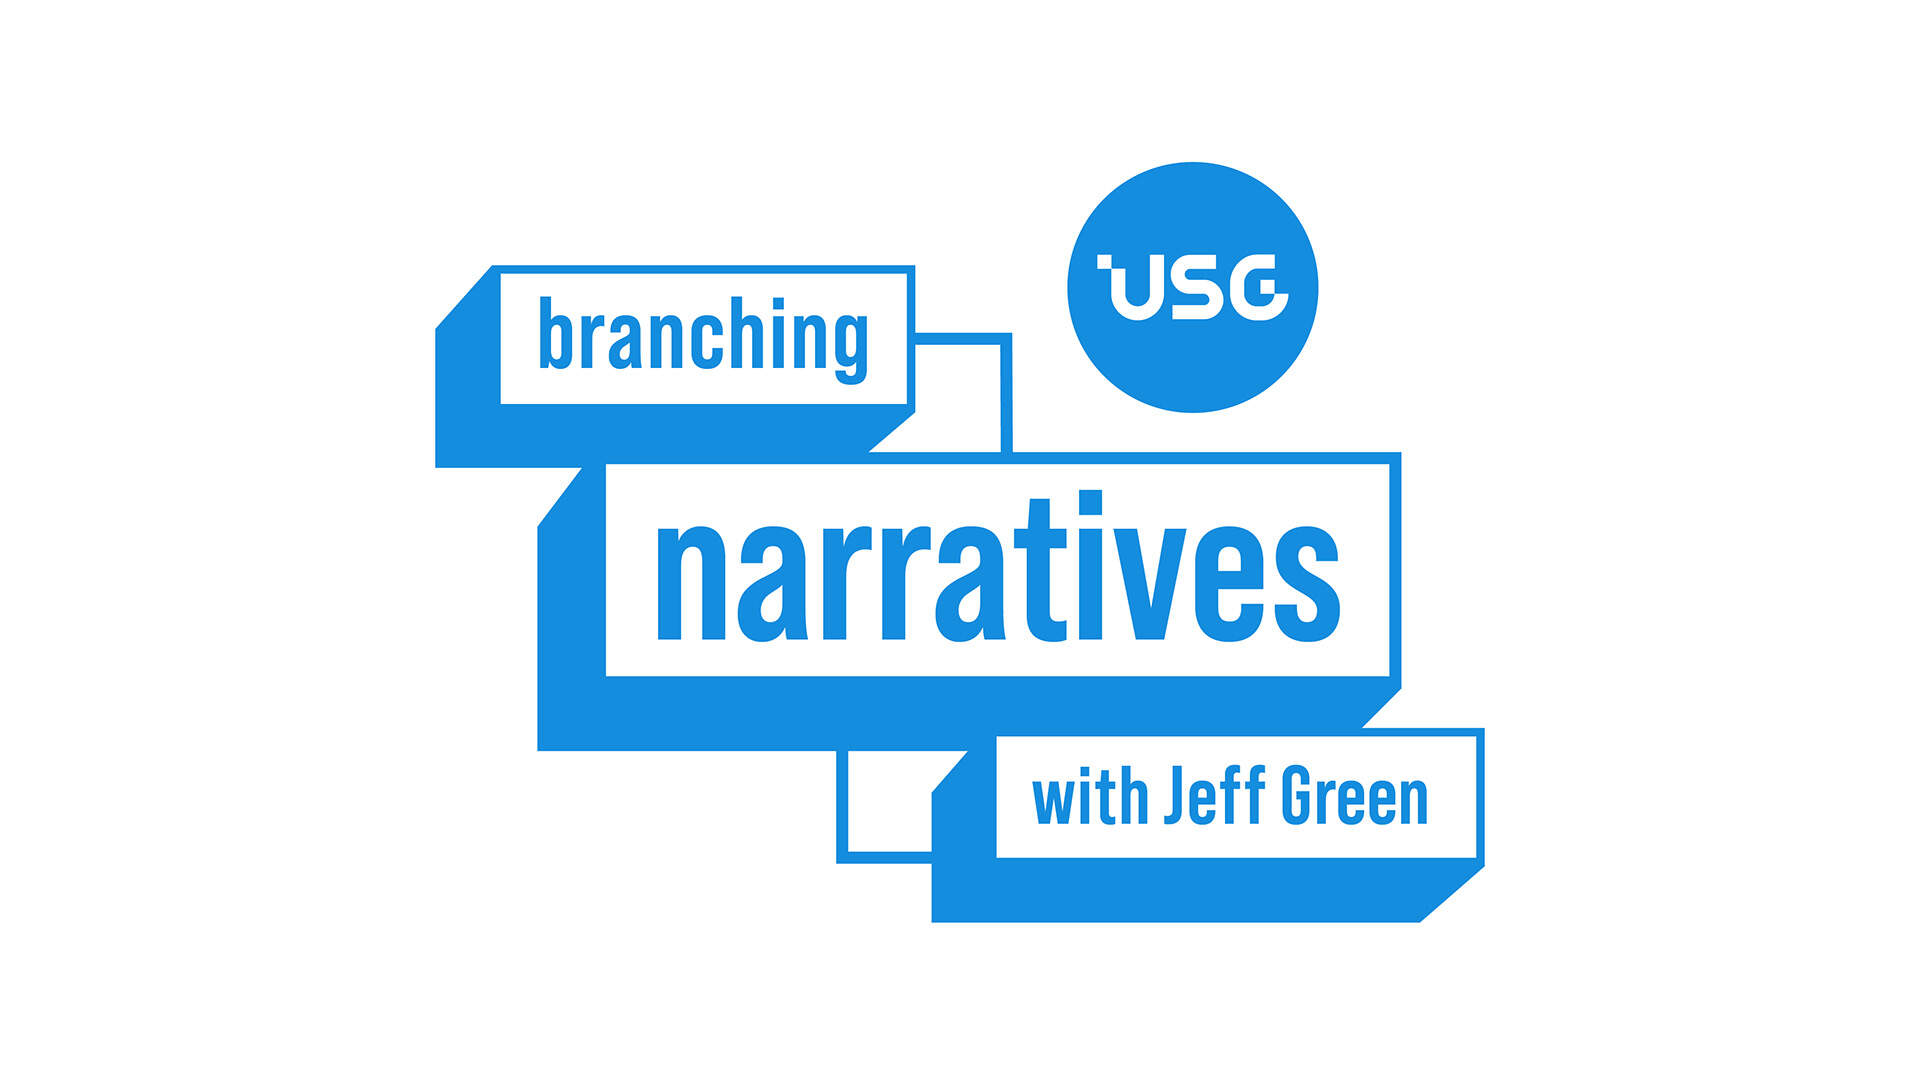 Branching Narratives: Jeff Green on '90s PC Gaming Magazines, Getting Older in the Games Industry, and GFW Radio Memories